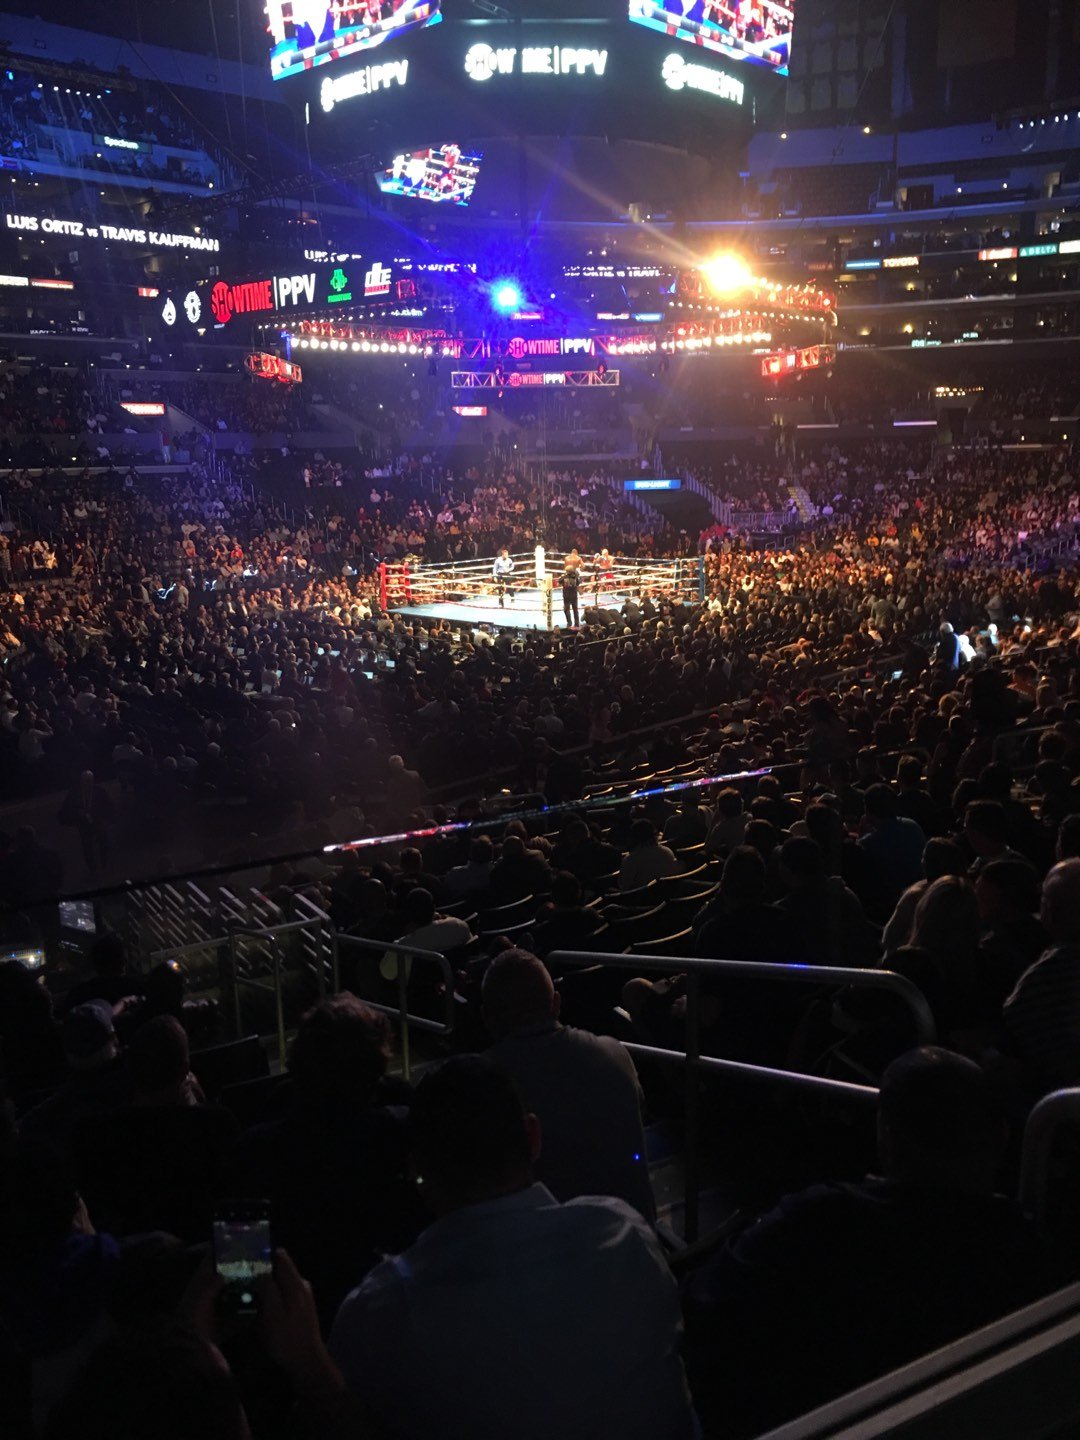 Staples Center Section 114 Row 18w Seat 2